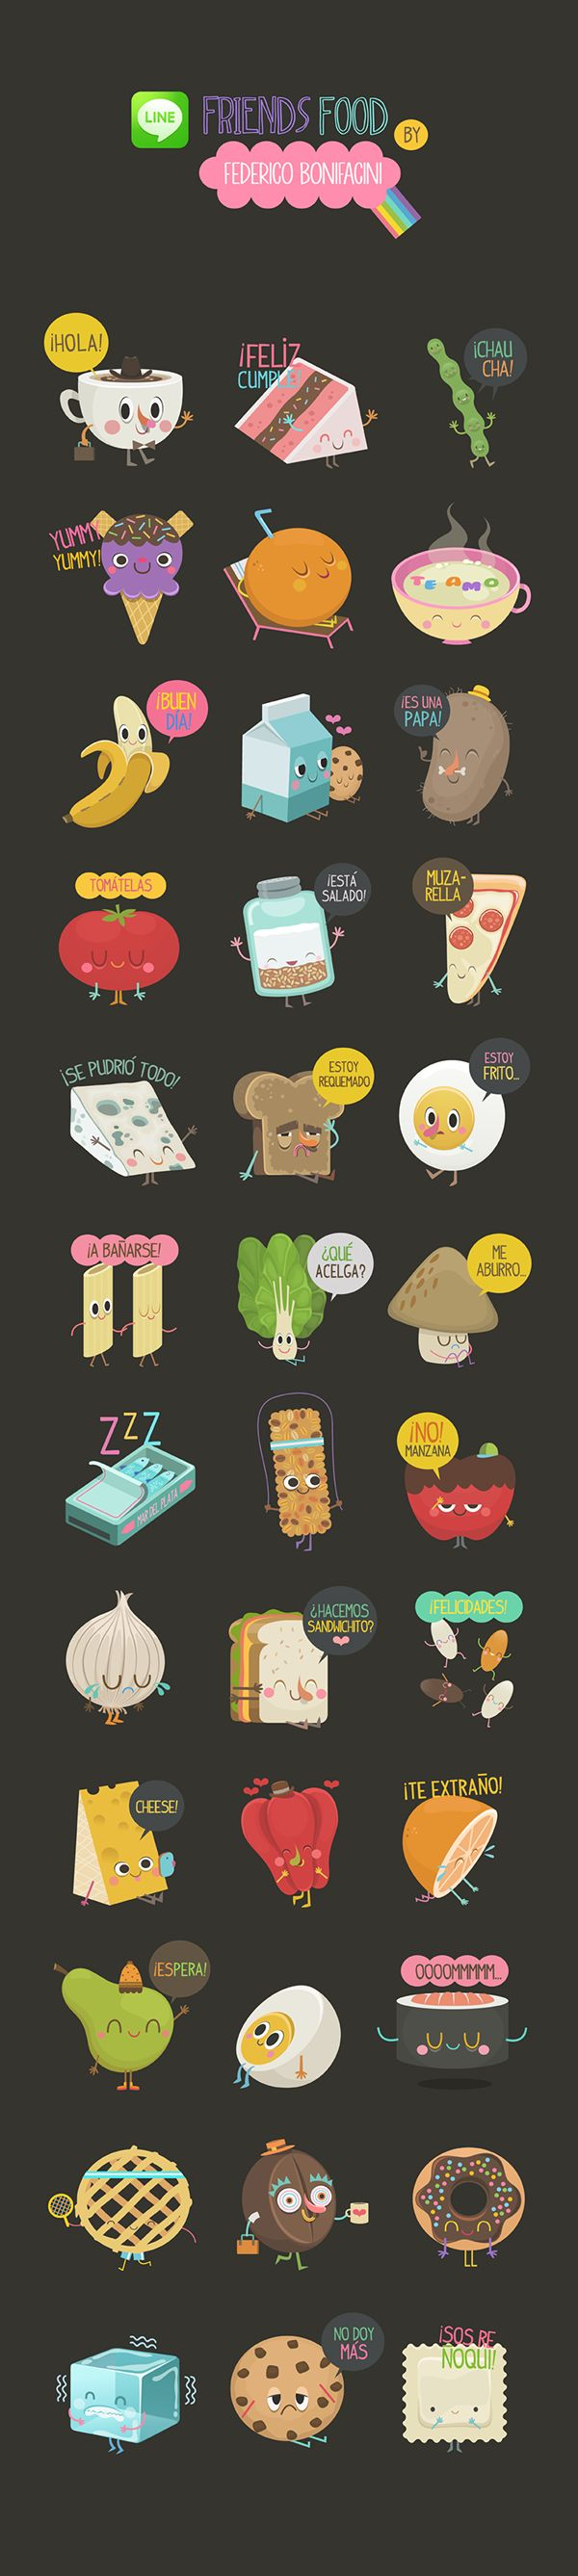 https://www.behance.net/gallery/22587311/FRIENDS-FOOD-Line-Stickers  ★ || CHARACTER DESIGN REFERENCES (https://www.facebook.com/CharacterDesignReferences & https://www.pinterest.com/characterdesigh) • Love Character Design? Join the #CDChallenge (link→ https://www.facebook.com/groups/CharacterDesignChallenge) Share your unique vision of a theme, promote your art in a community of over 25.000 artists! || ★